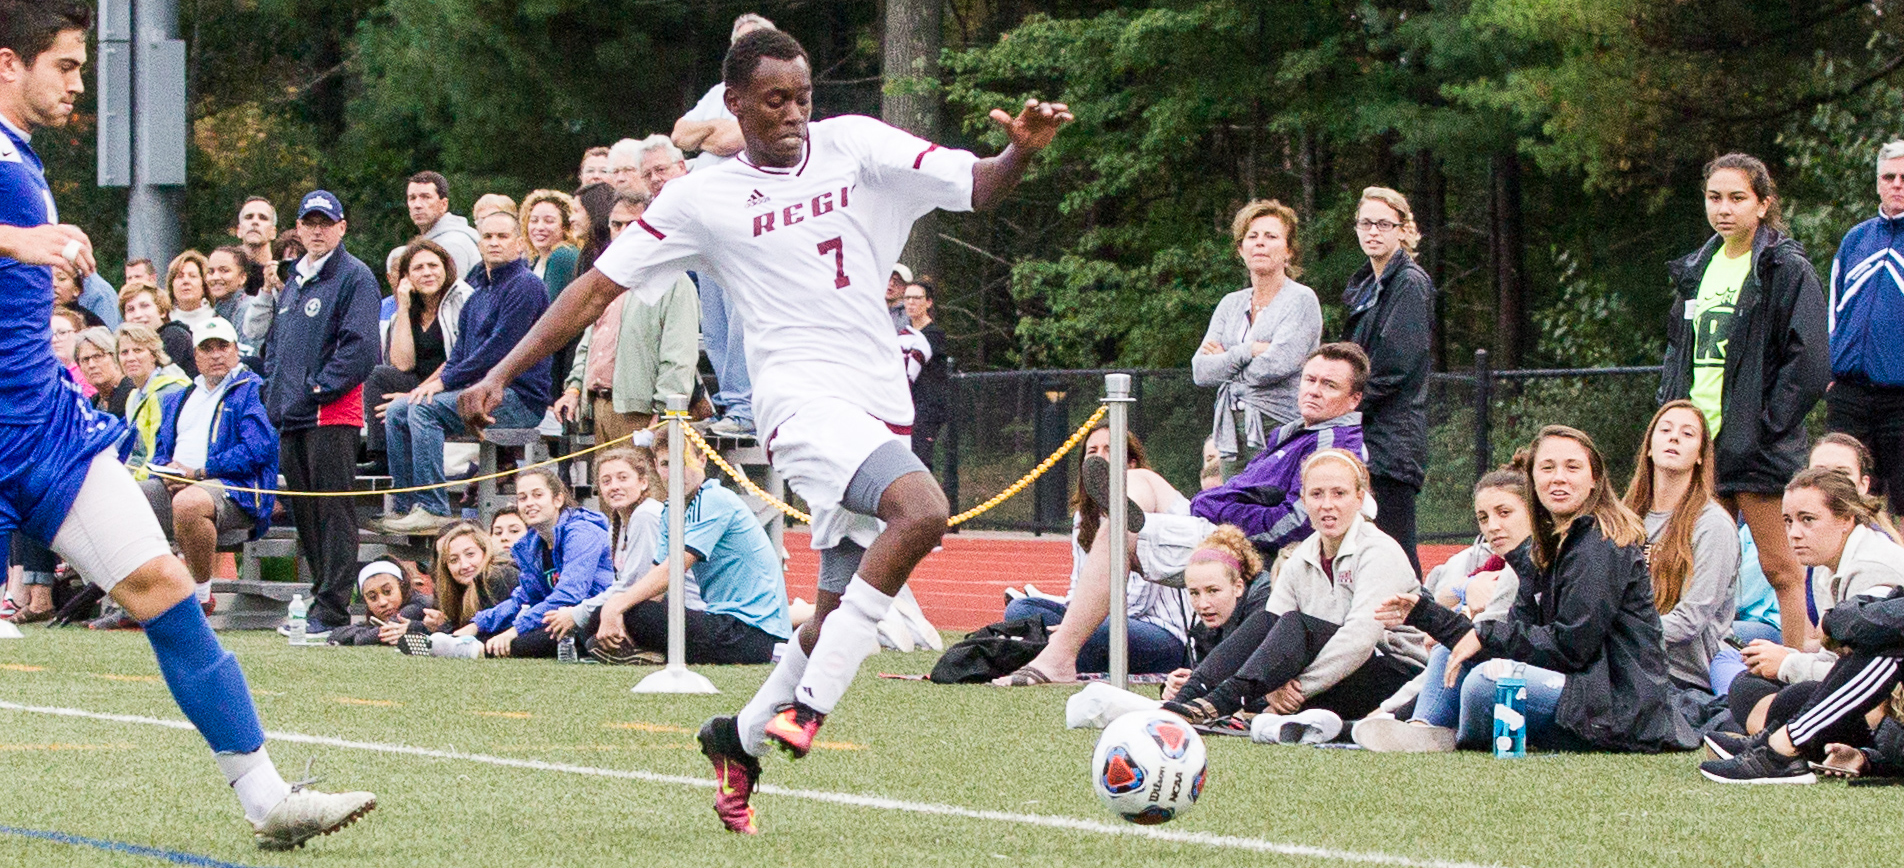 Men's Soccer Records 3-1 Win Over Suffolk